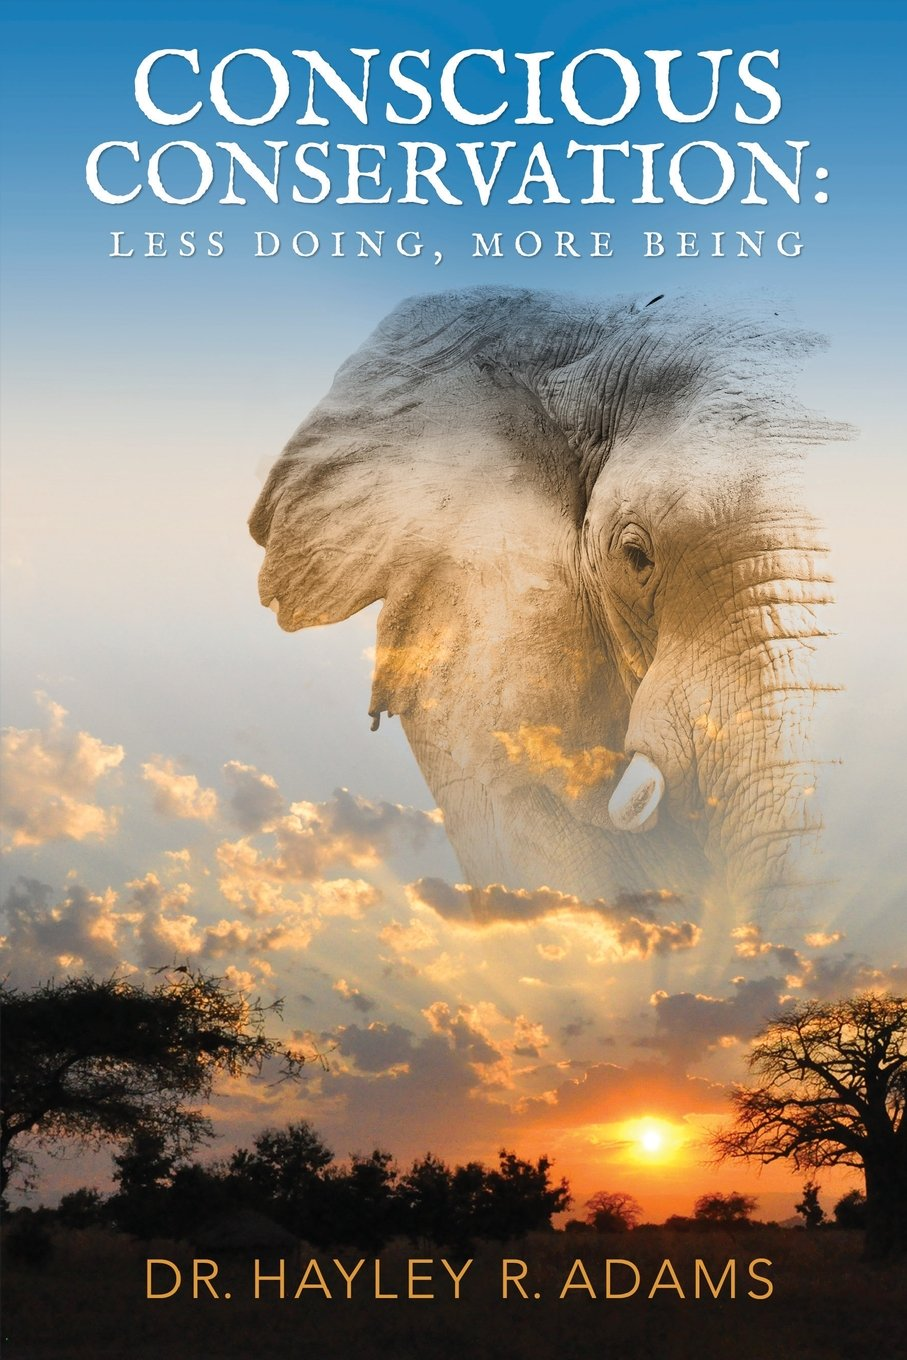 Conscious conservation less doing more being dr hayley r adams conscious conservation less doing more being dr hayley r adams 9781977706638 amazon books fandeluxe Image collections